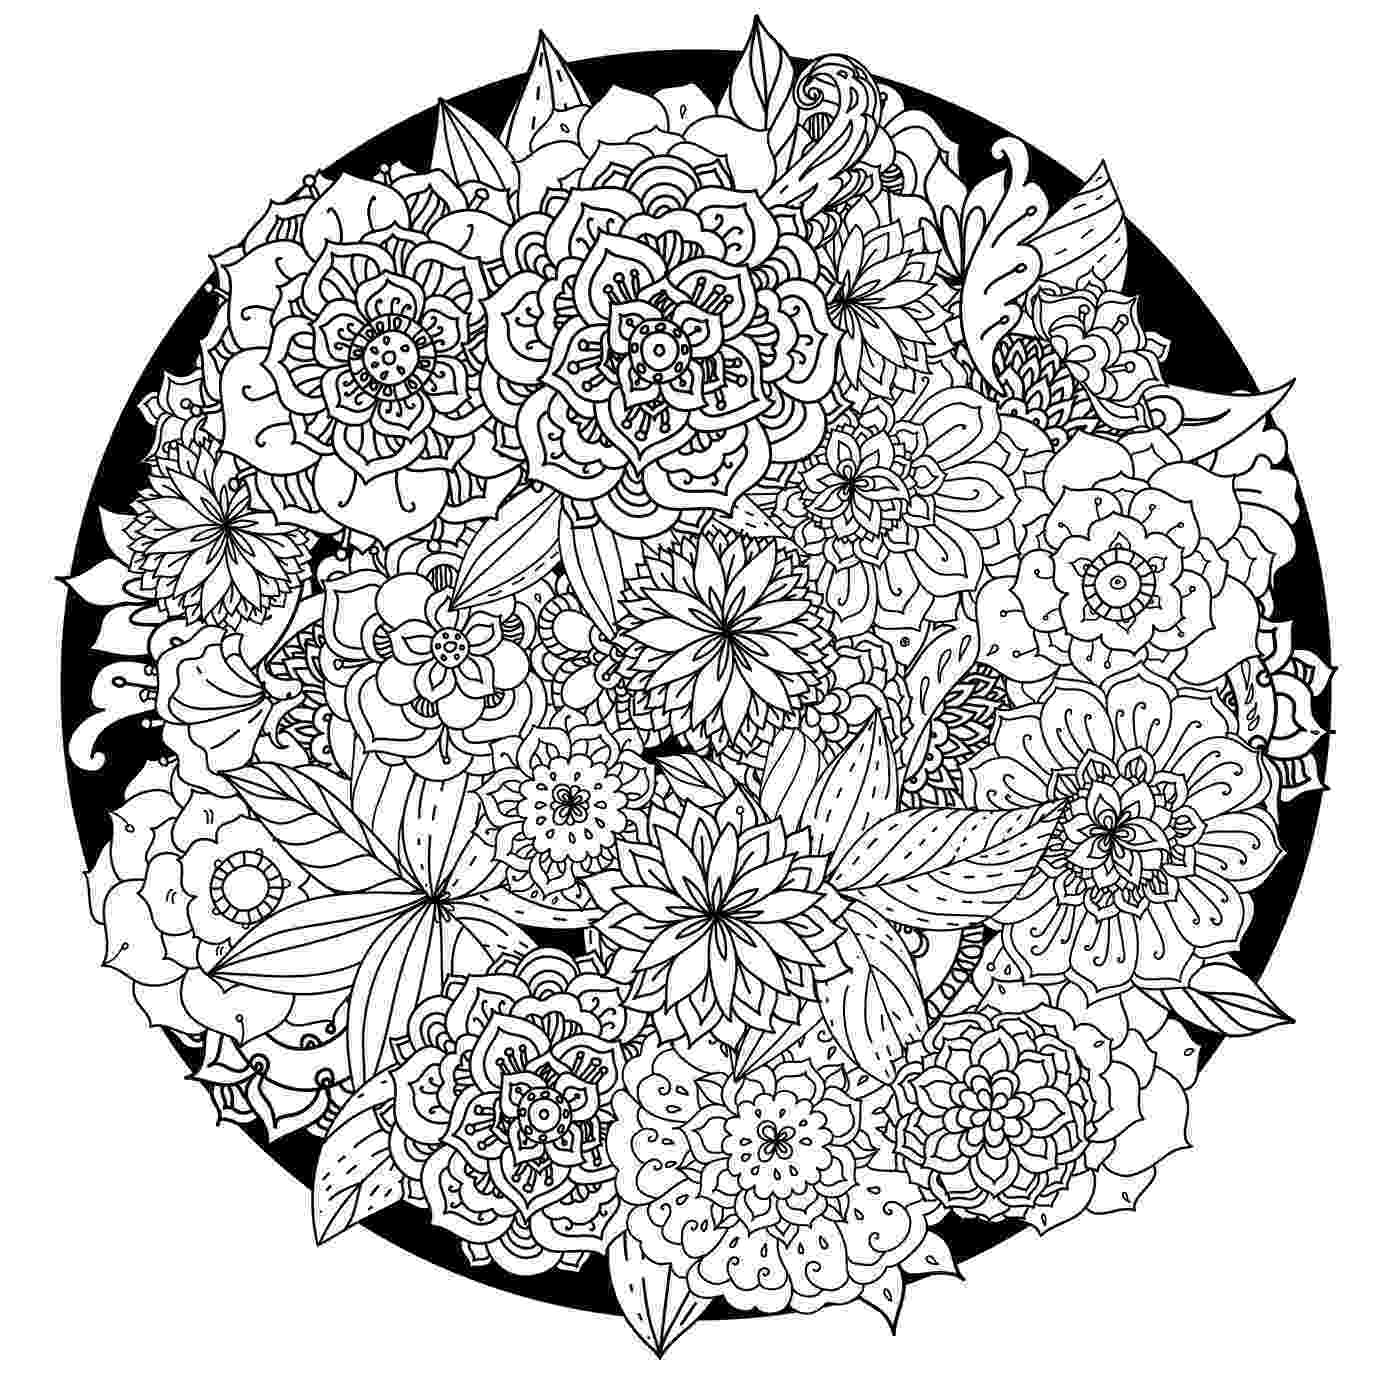 coloring mandalas for adults 63 adult coloring pages to nourish your mental visual mandalas adults for coloring